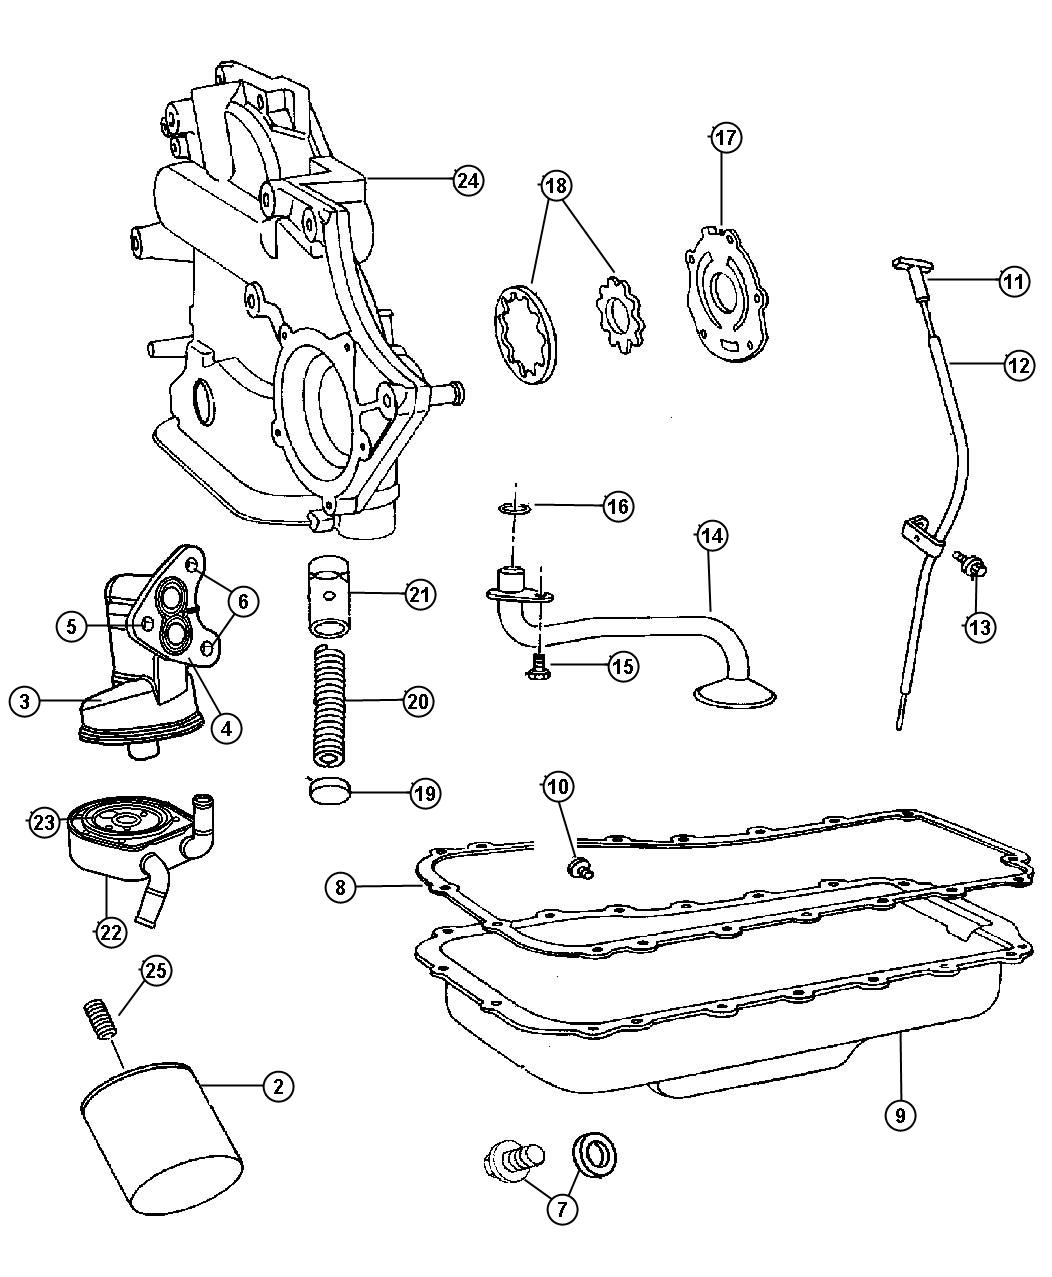 2005 Chrysler Town & Country Cover package. Engine timing